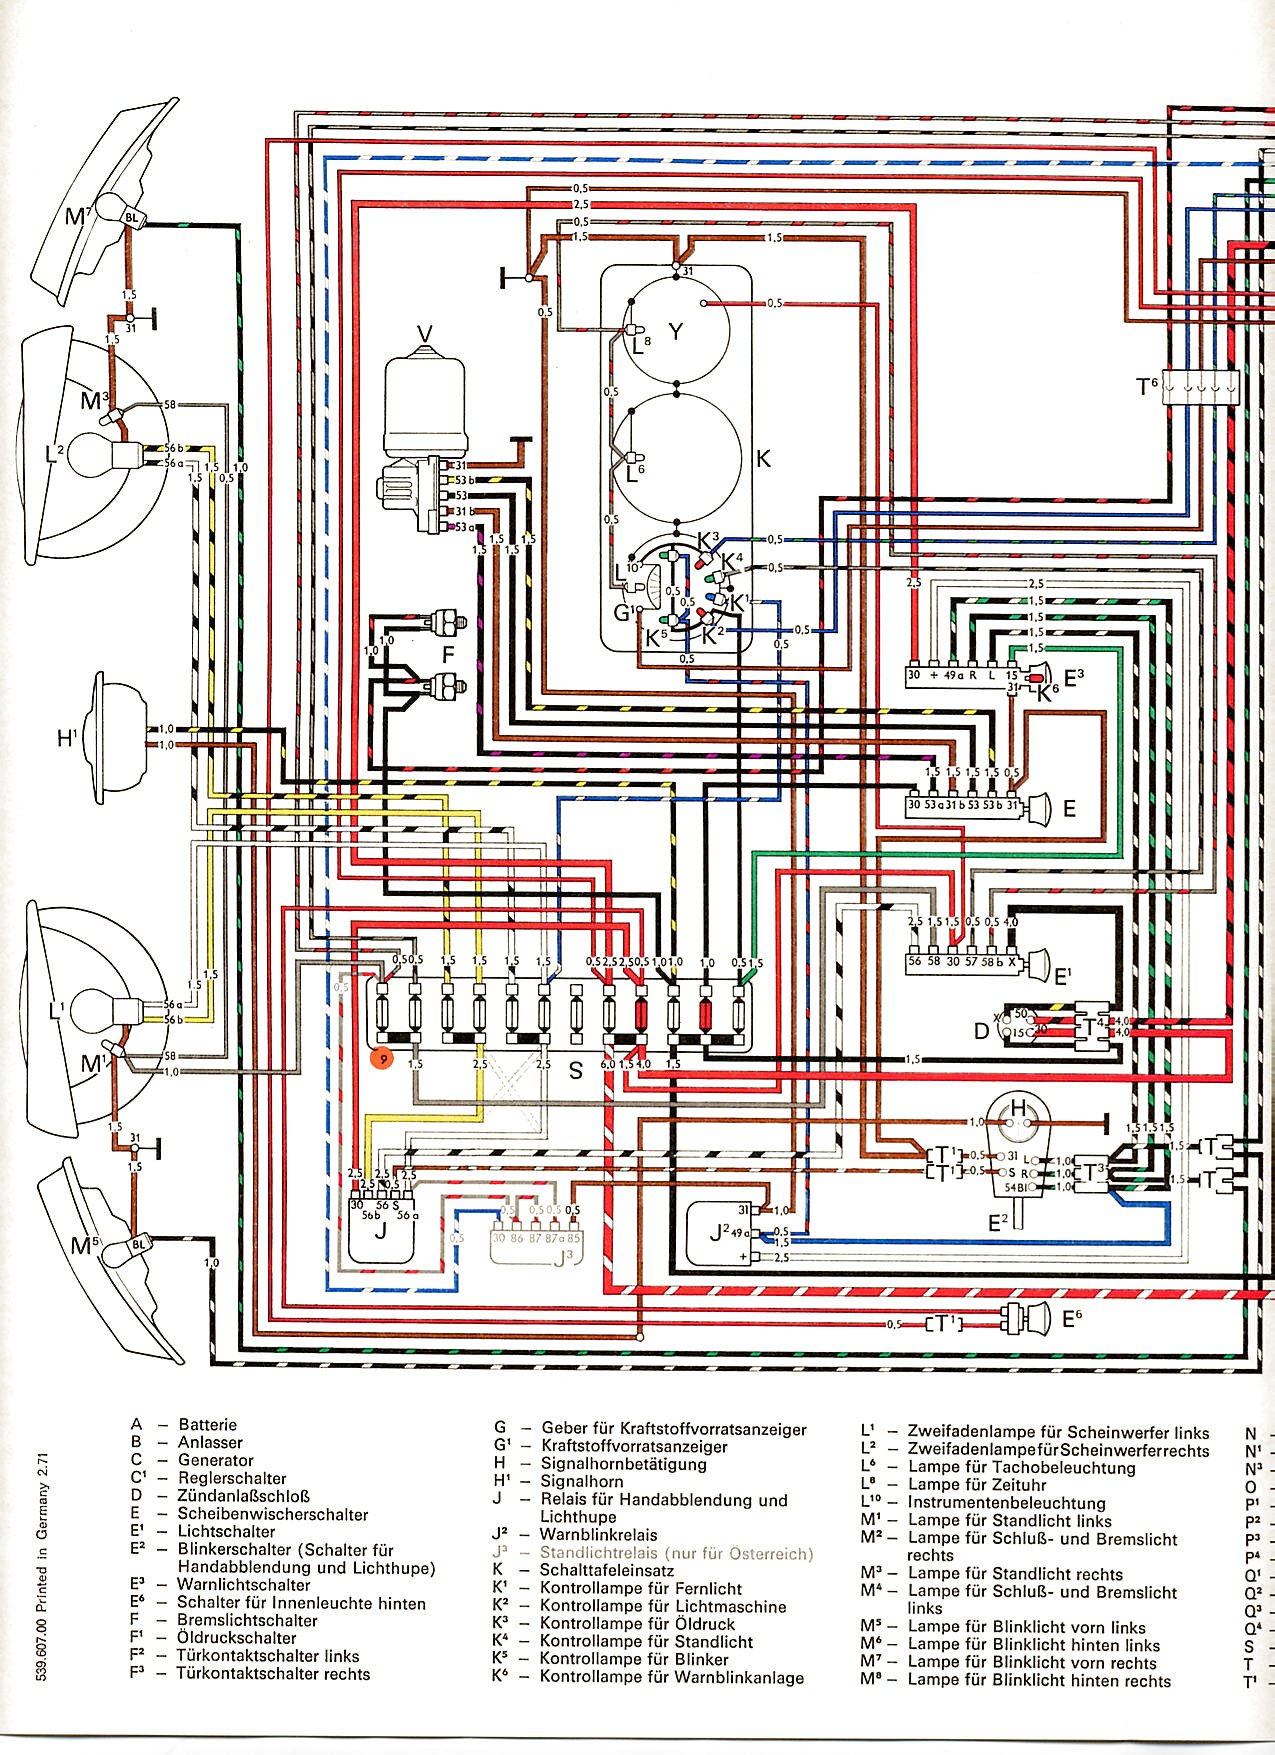 01642 76 Vw Bus Wiring Diagram | Wiring Resources on jaguar s type wiring diagram, vw type 1 maintenance, vw type 1 suspension, vw type 1 fuel pump, vw type 1 fuel gauge, vw type 1 exhaust, vw type 1 air conditioning, vw type 1 generator, vw type 1 fan belt, vw type 1 dimensions, vw type 1 body, vw type 1 flywheel, vw type 1 starter, vw type 1 brakes, vw type 1 wheels, vw type 1 frame, volkswagen type 3 wiring diagram, vw type 1 torque specs,